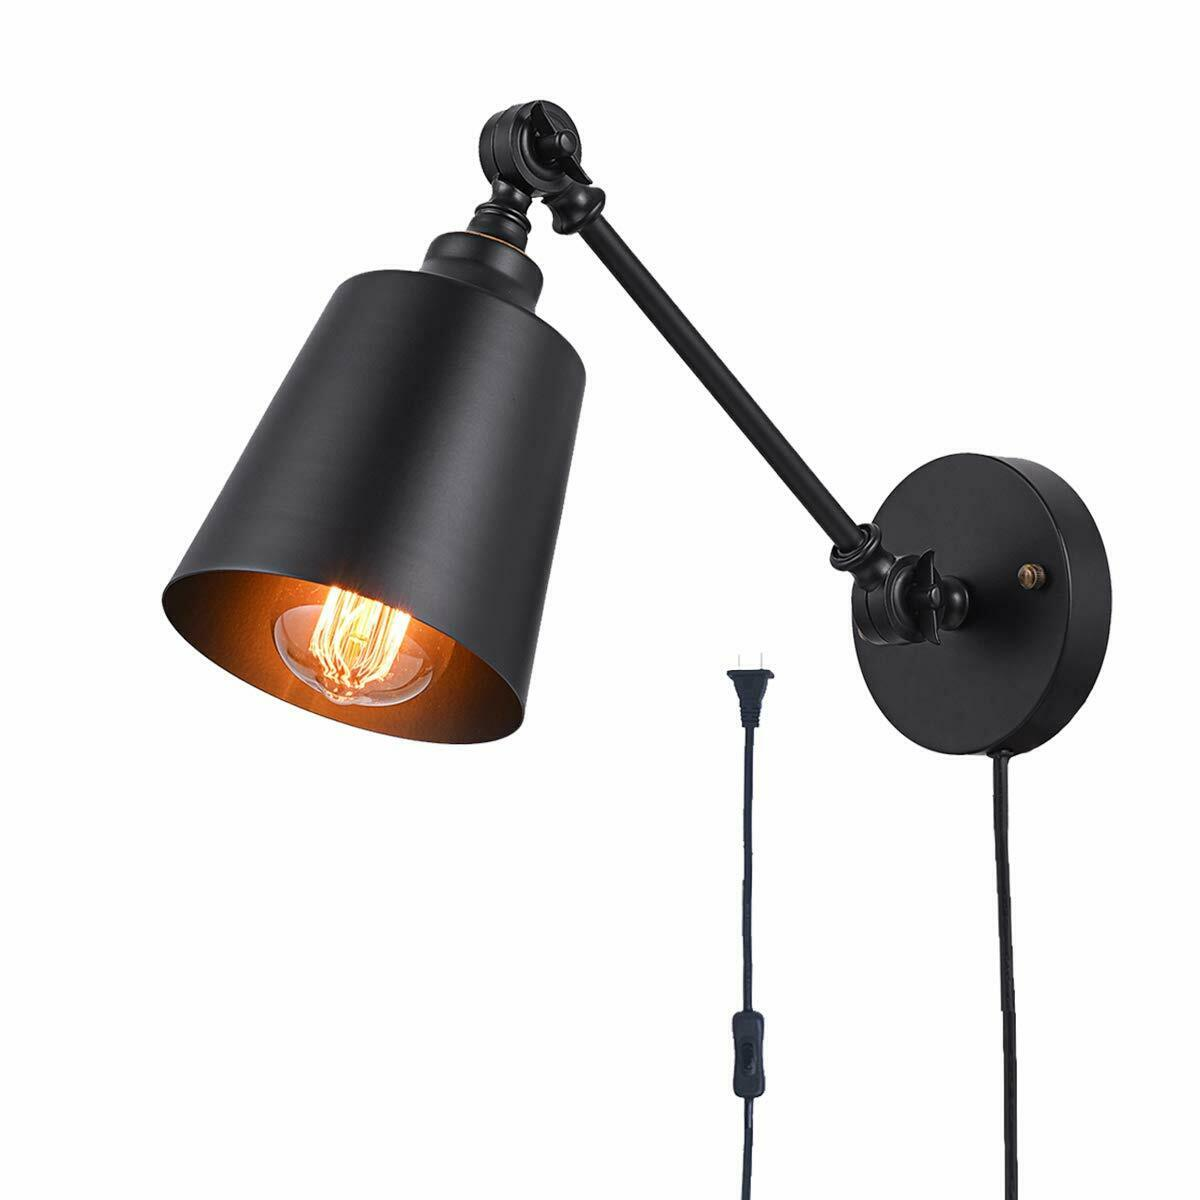 Image of: Exterior Wall Light Fixture Outdoor Lamp Coach Electrical Plug In Outlet Black For Sale Online Ebay